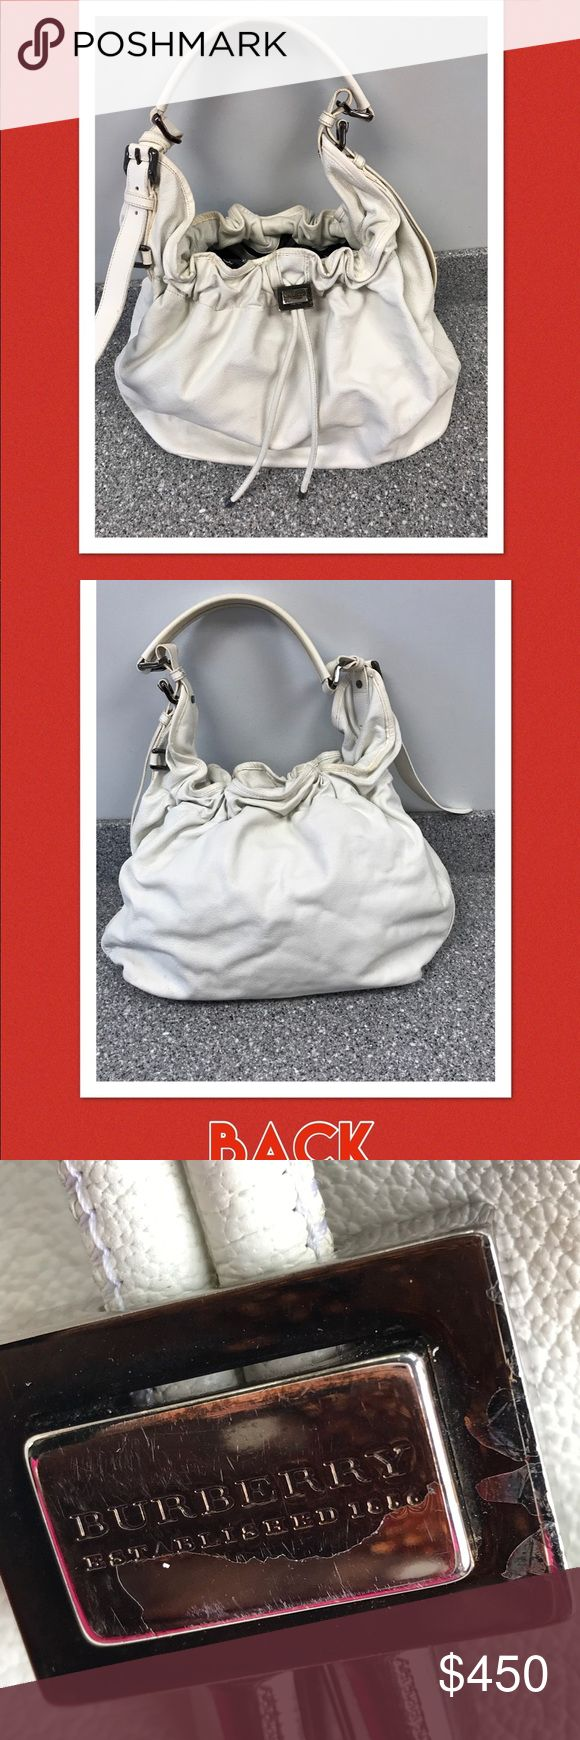 Burberry offwhite large drawstring hobo handbag Burberry authentic butter soft leather off white soft large drawstring handbag . The leather and hardware is fabulous !! The inside is super clean . I lost the dust bag . The bottom has brass protective feet all intact . Size -19 inches across by 12 inches high by 13 inches deep .The Burberry silver pull has discolored but can be shined .slight yellowing under the strap and one place on the trim from sitting in my closet needs cleaning with…